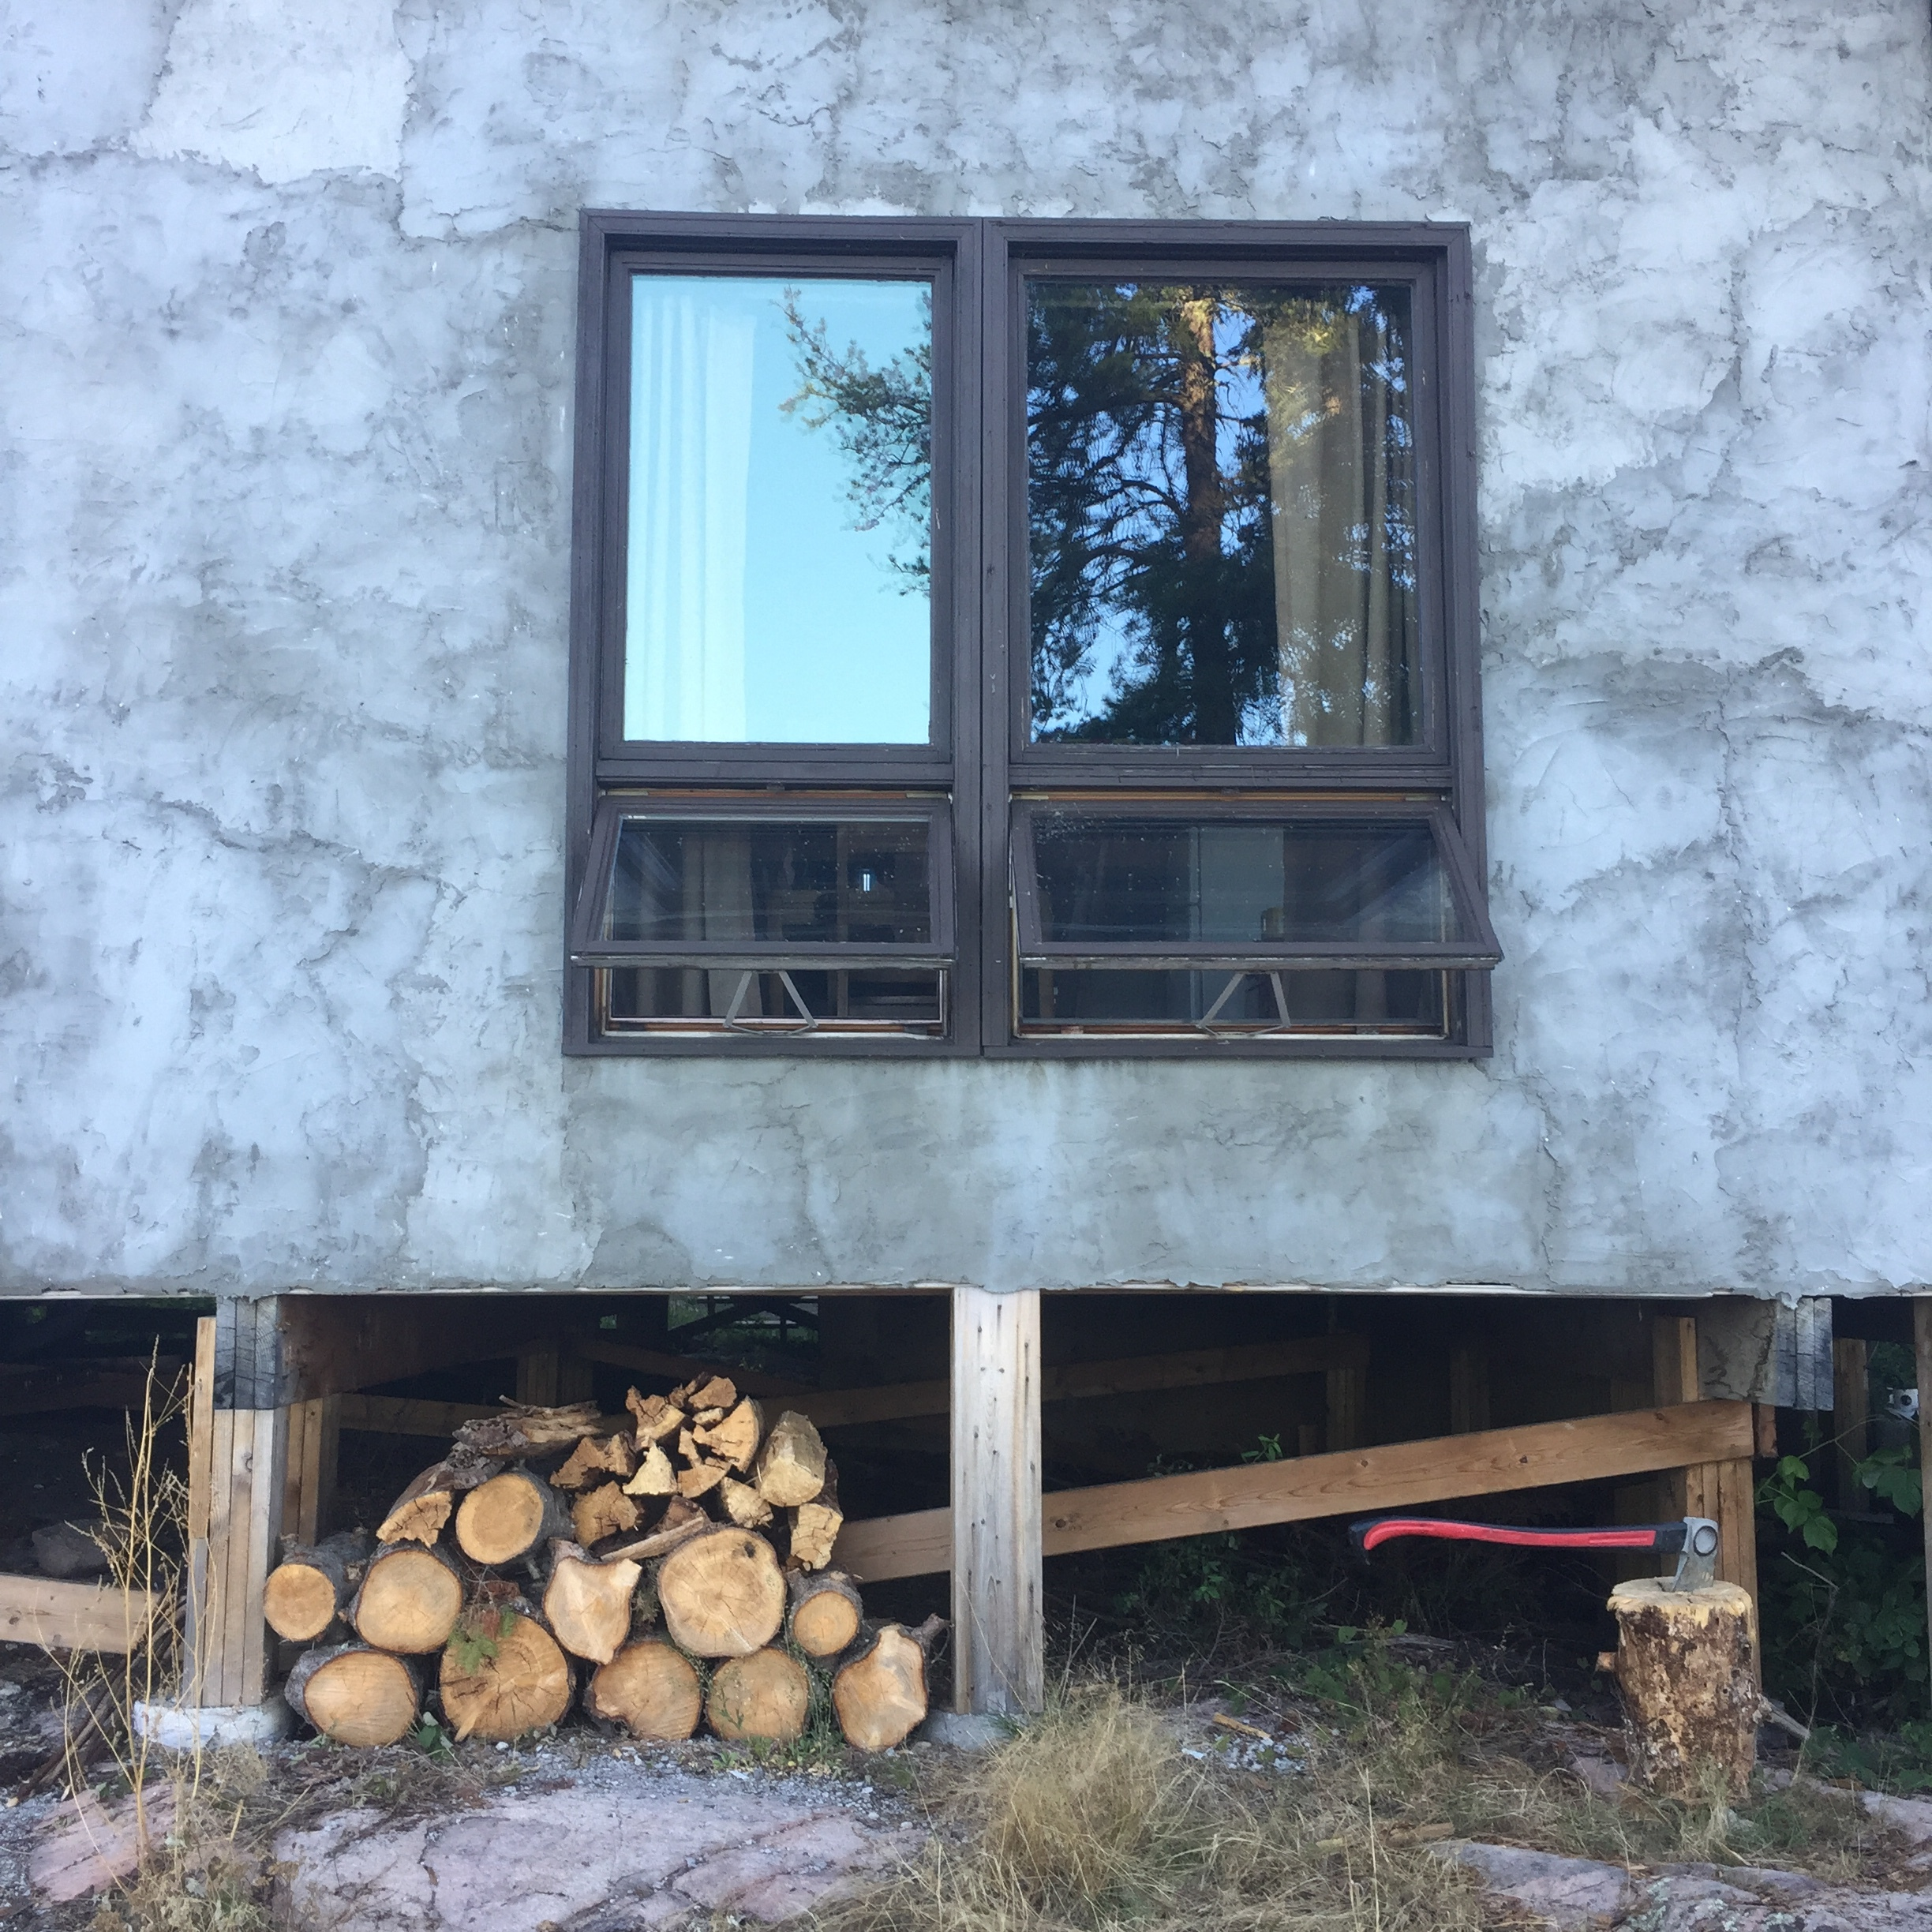 Cross-ventilation and firewood stack.